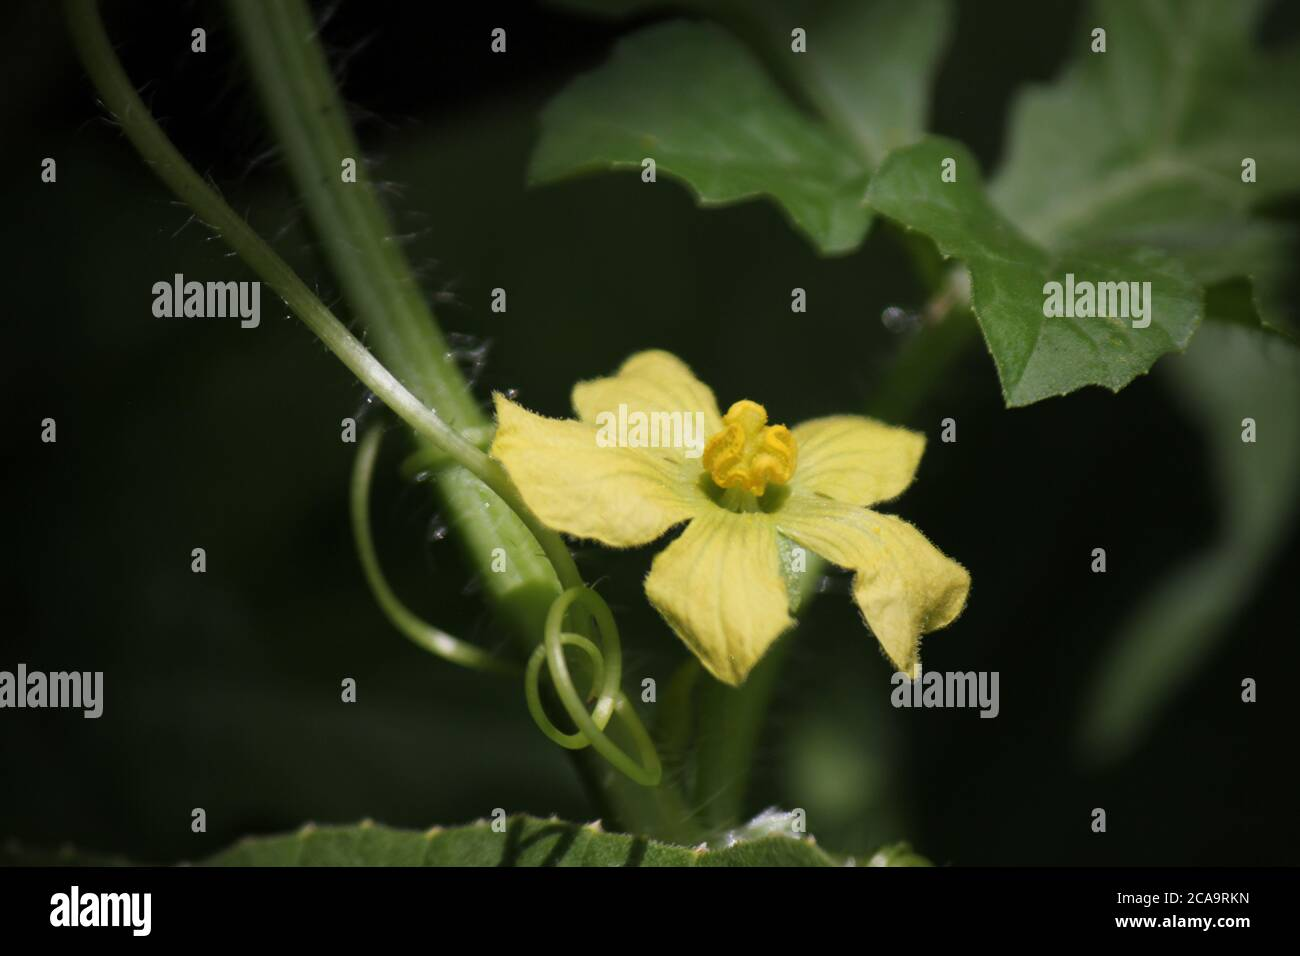 Backyard Organic Urban Gardening Of A Beautiful Yellow Cantaloupe Flower Stock Photo Alamy Cantaloupe was very popular and often cultivated in the ancient egypt. alamy